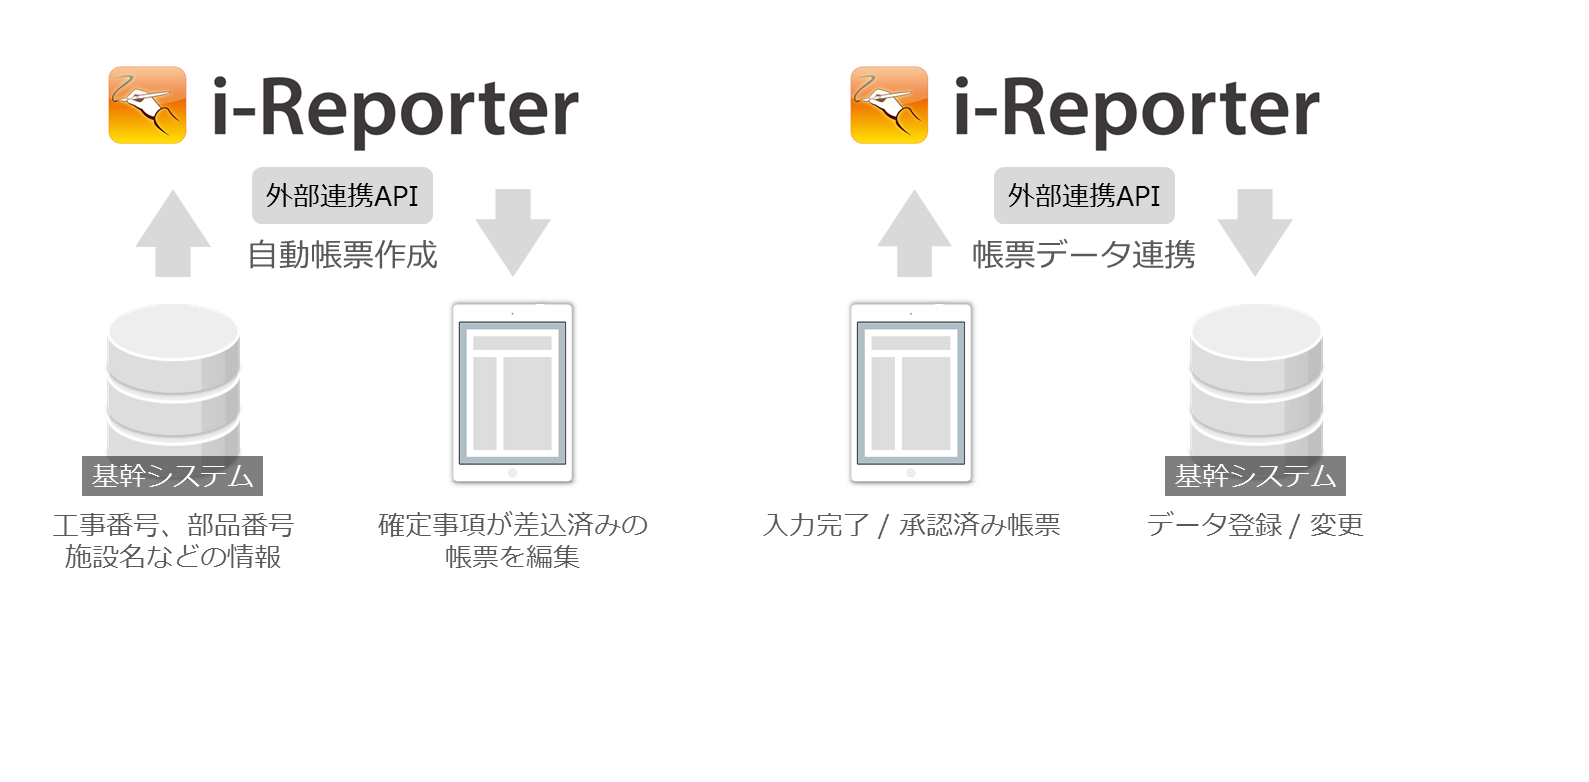 ConMas-i-Reporter-image3-1.png